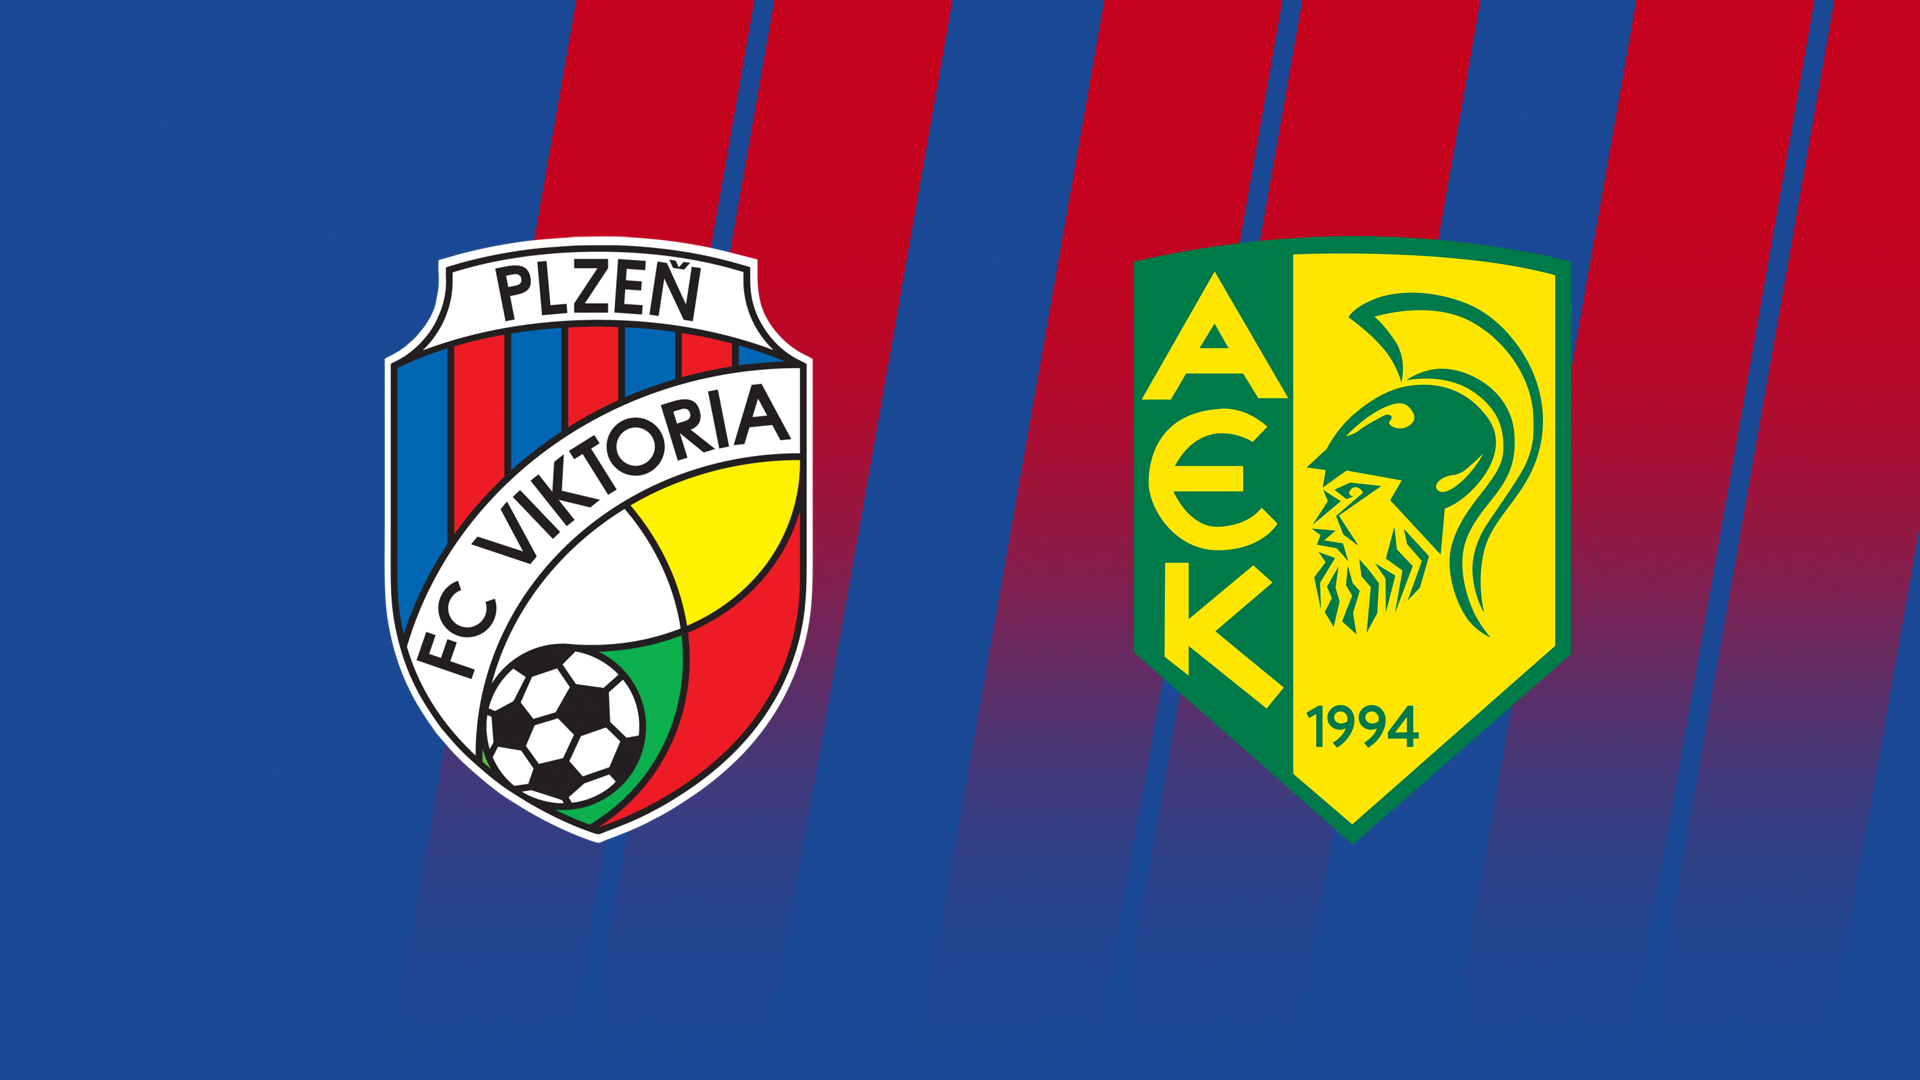 Viktoria will face AEK Larnaca in UEFA Europa League Play-off